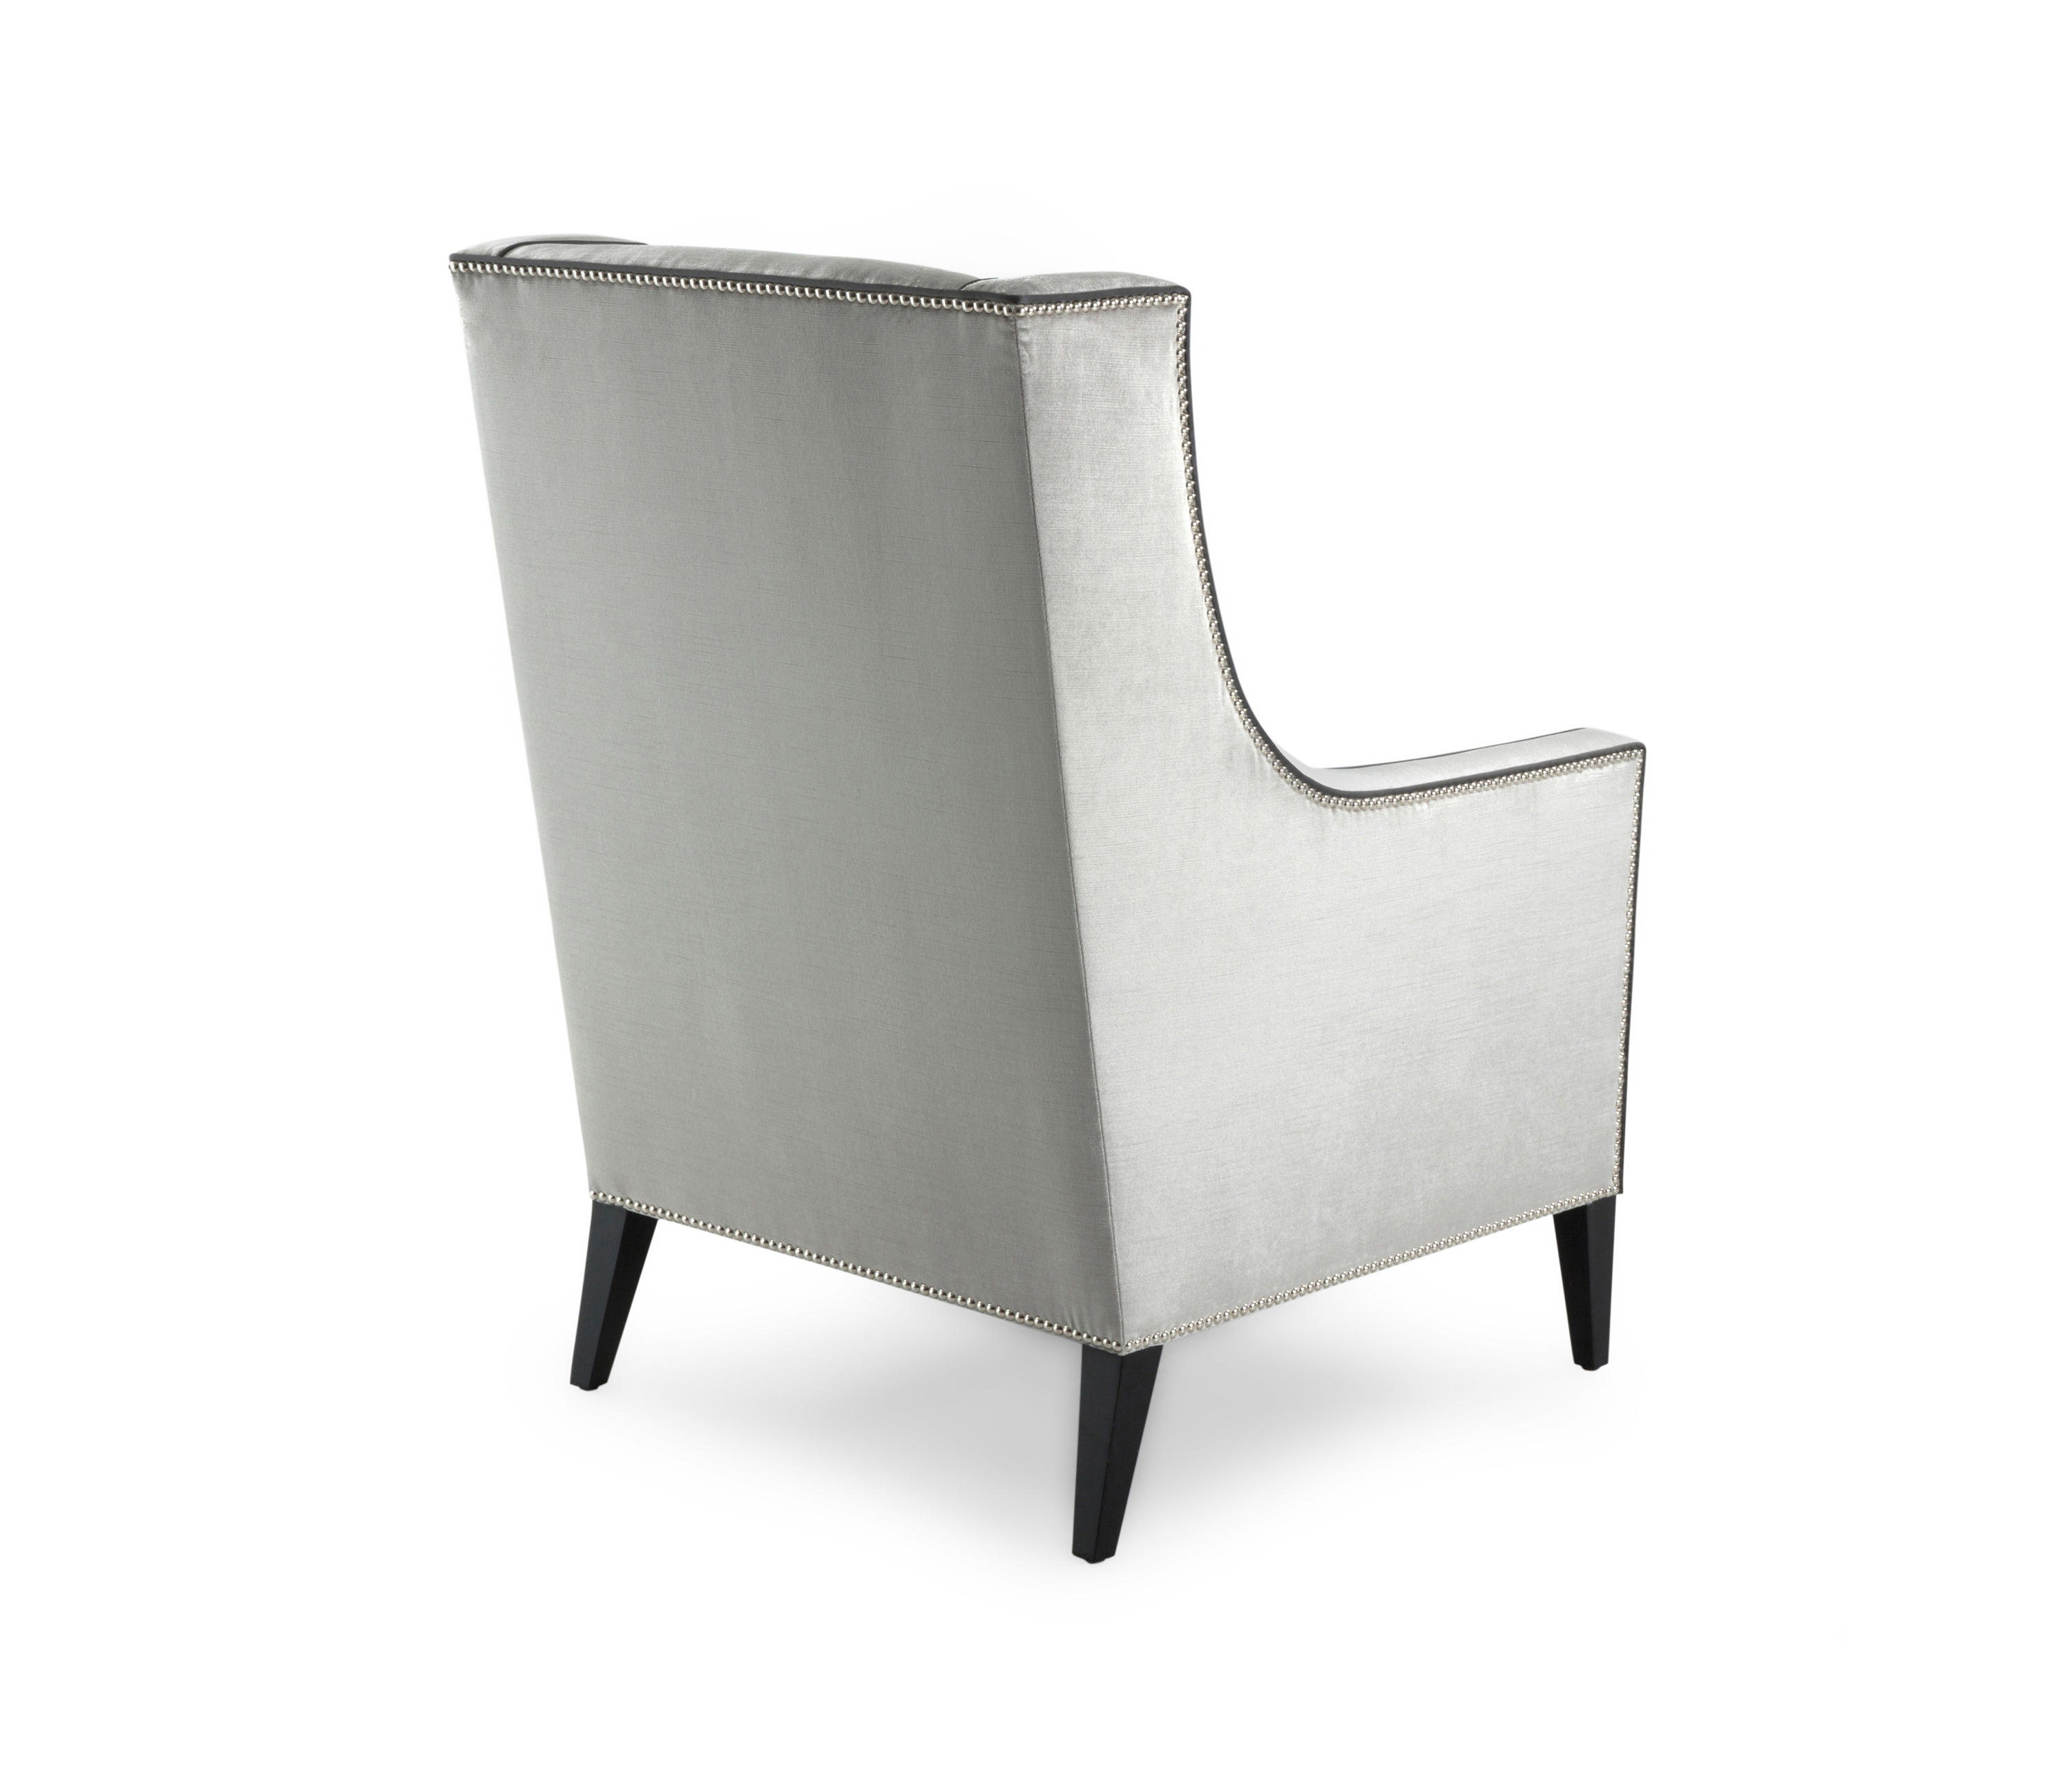 ... Christo Small Occasional Chair By The Sofa U0026 Chair Company Ltd | Lounge  Chairs ...